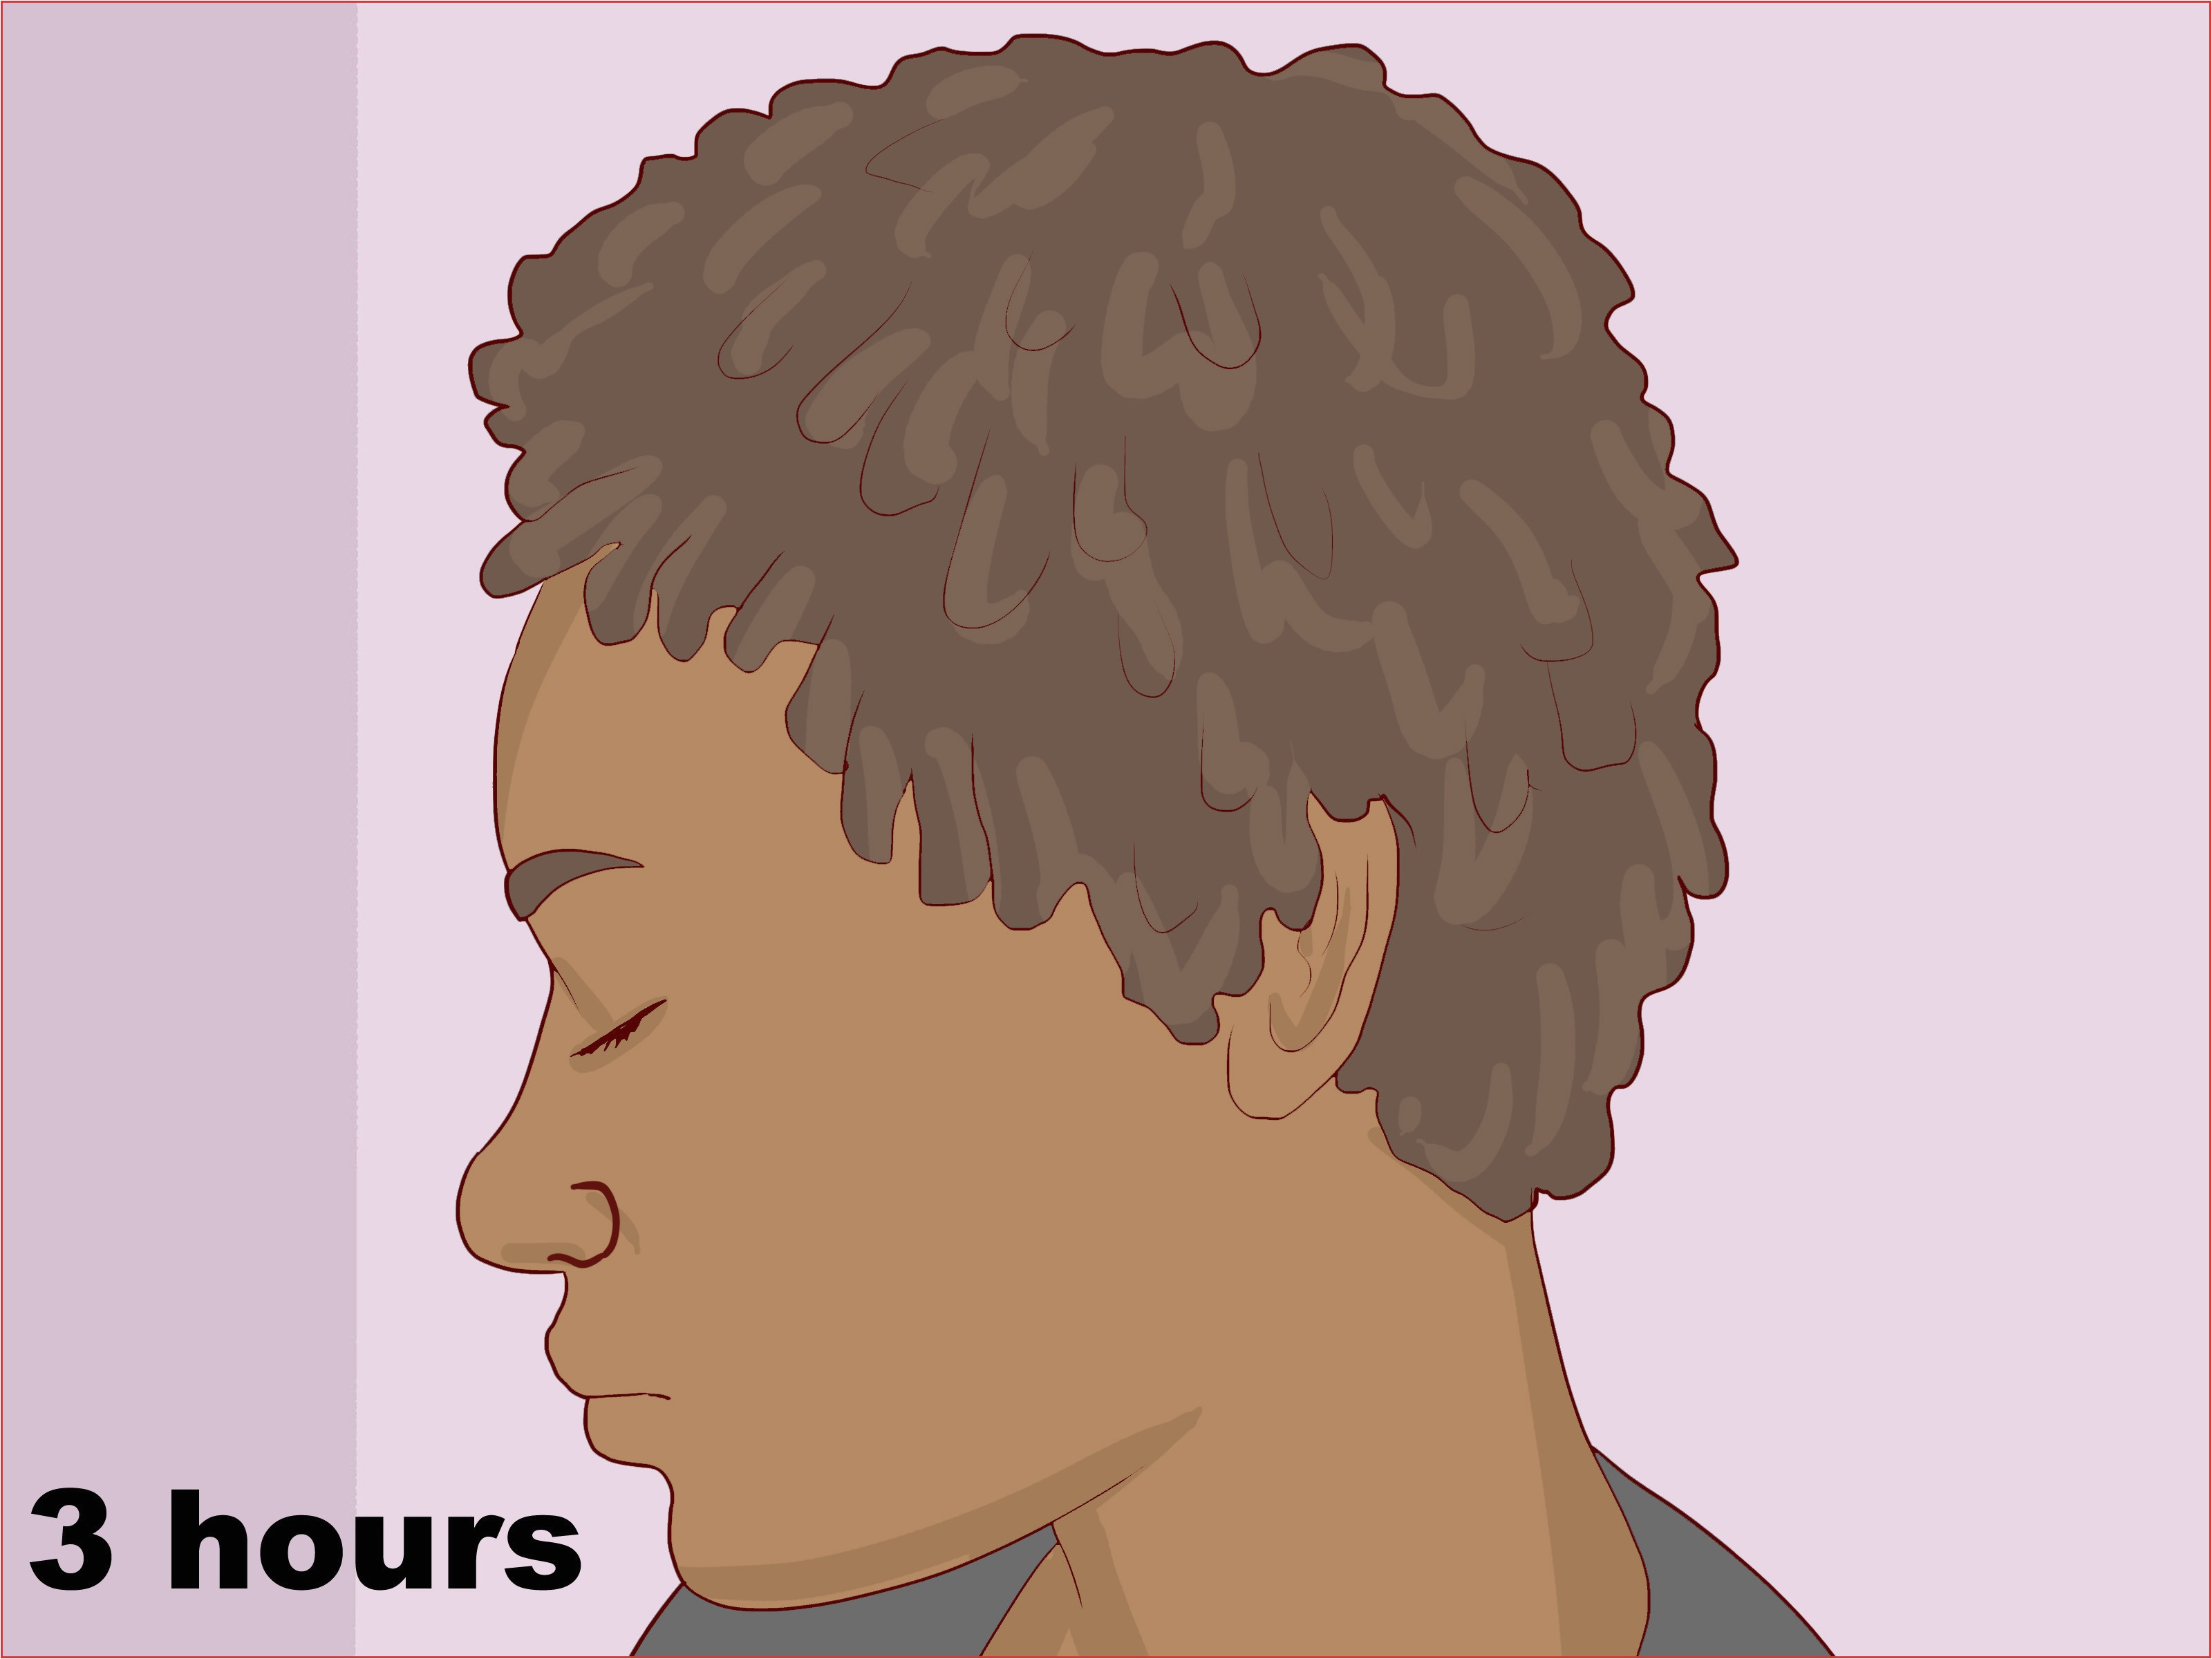 Dreads Hair Color Nappy Hairstyles for Guys New How to Start Dreads with Short Hair